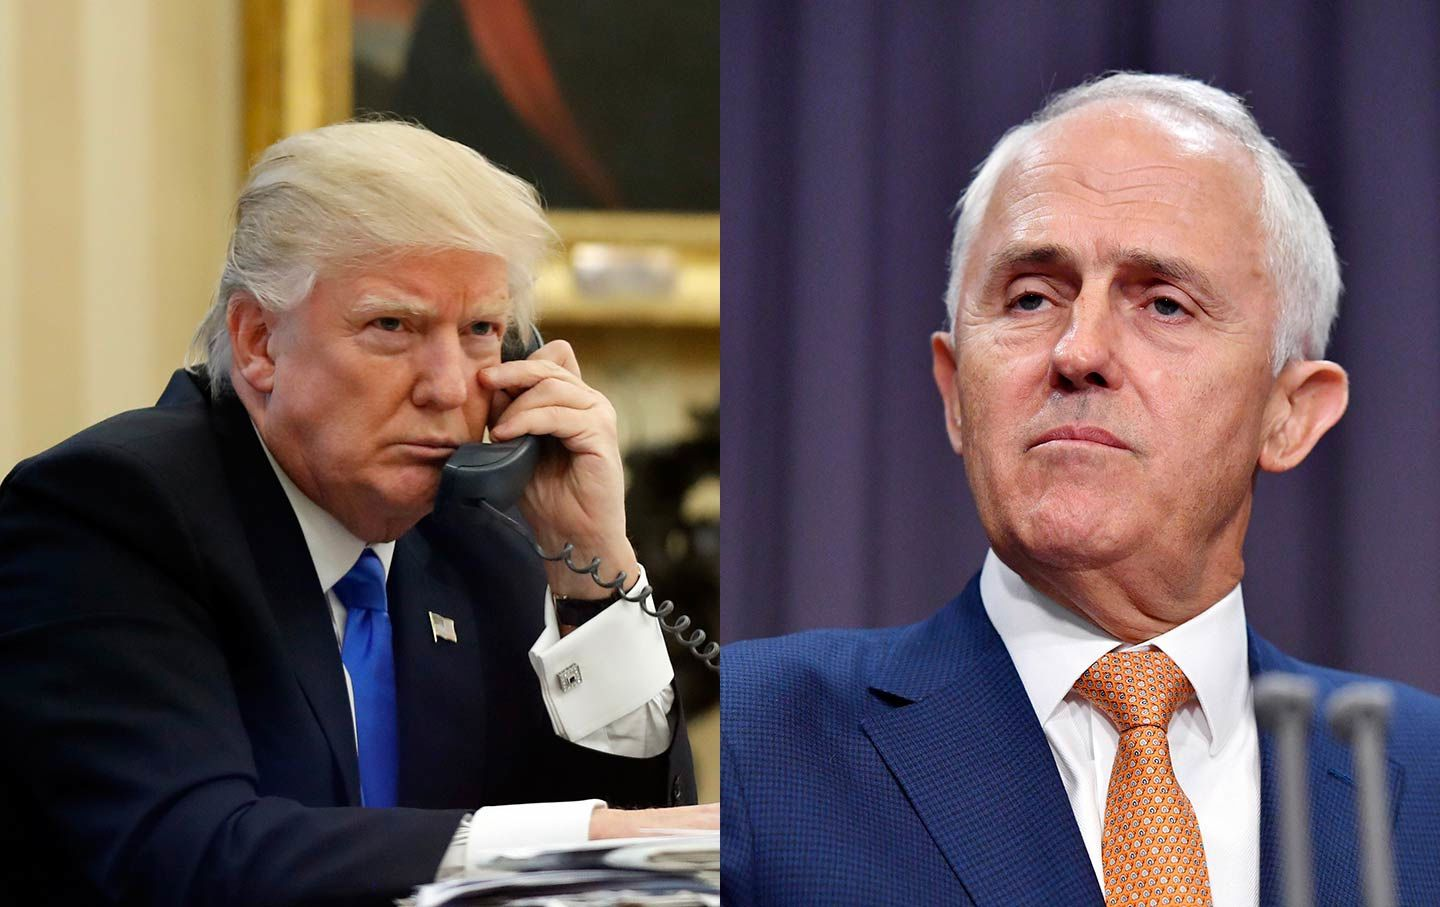 Winning over the president: Turnbull meets Trump